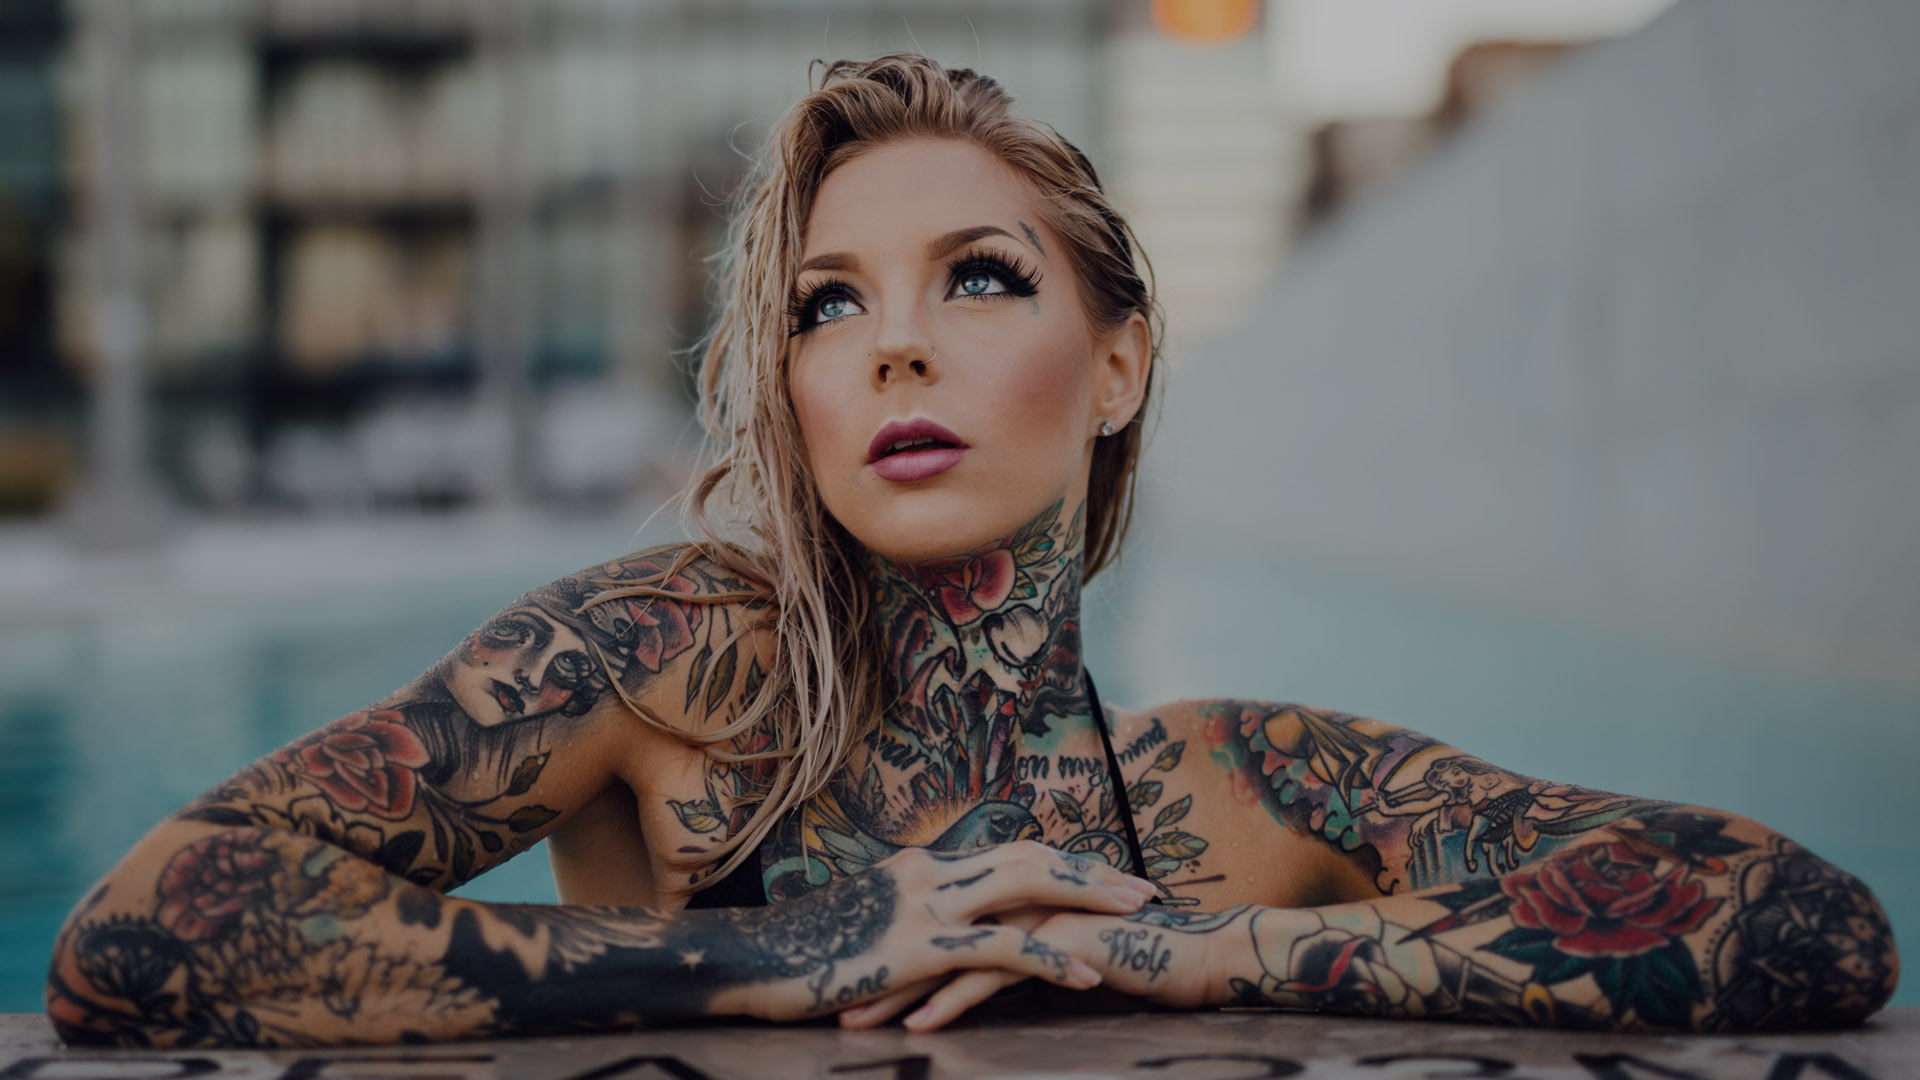 17 kokendhete vrouwen die laten zien dat inkt sexy is fhm for Good girl tattoos